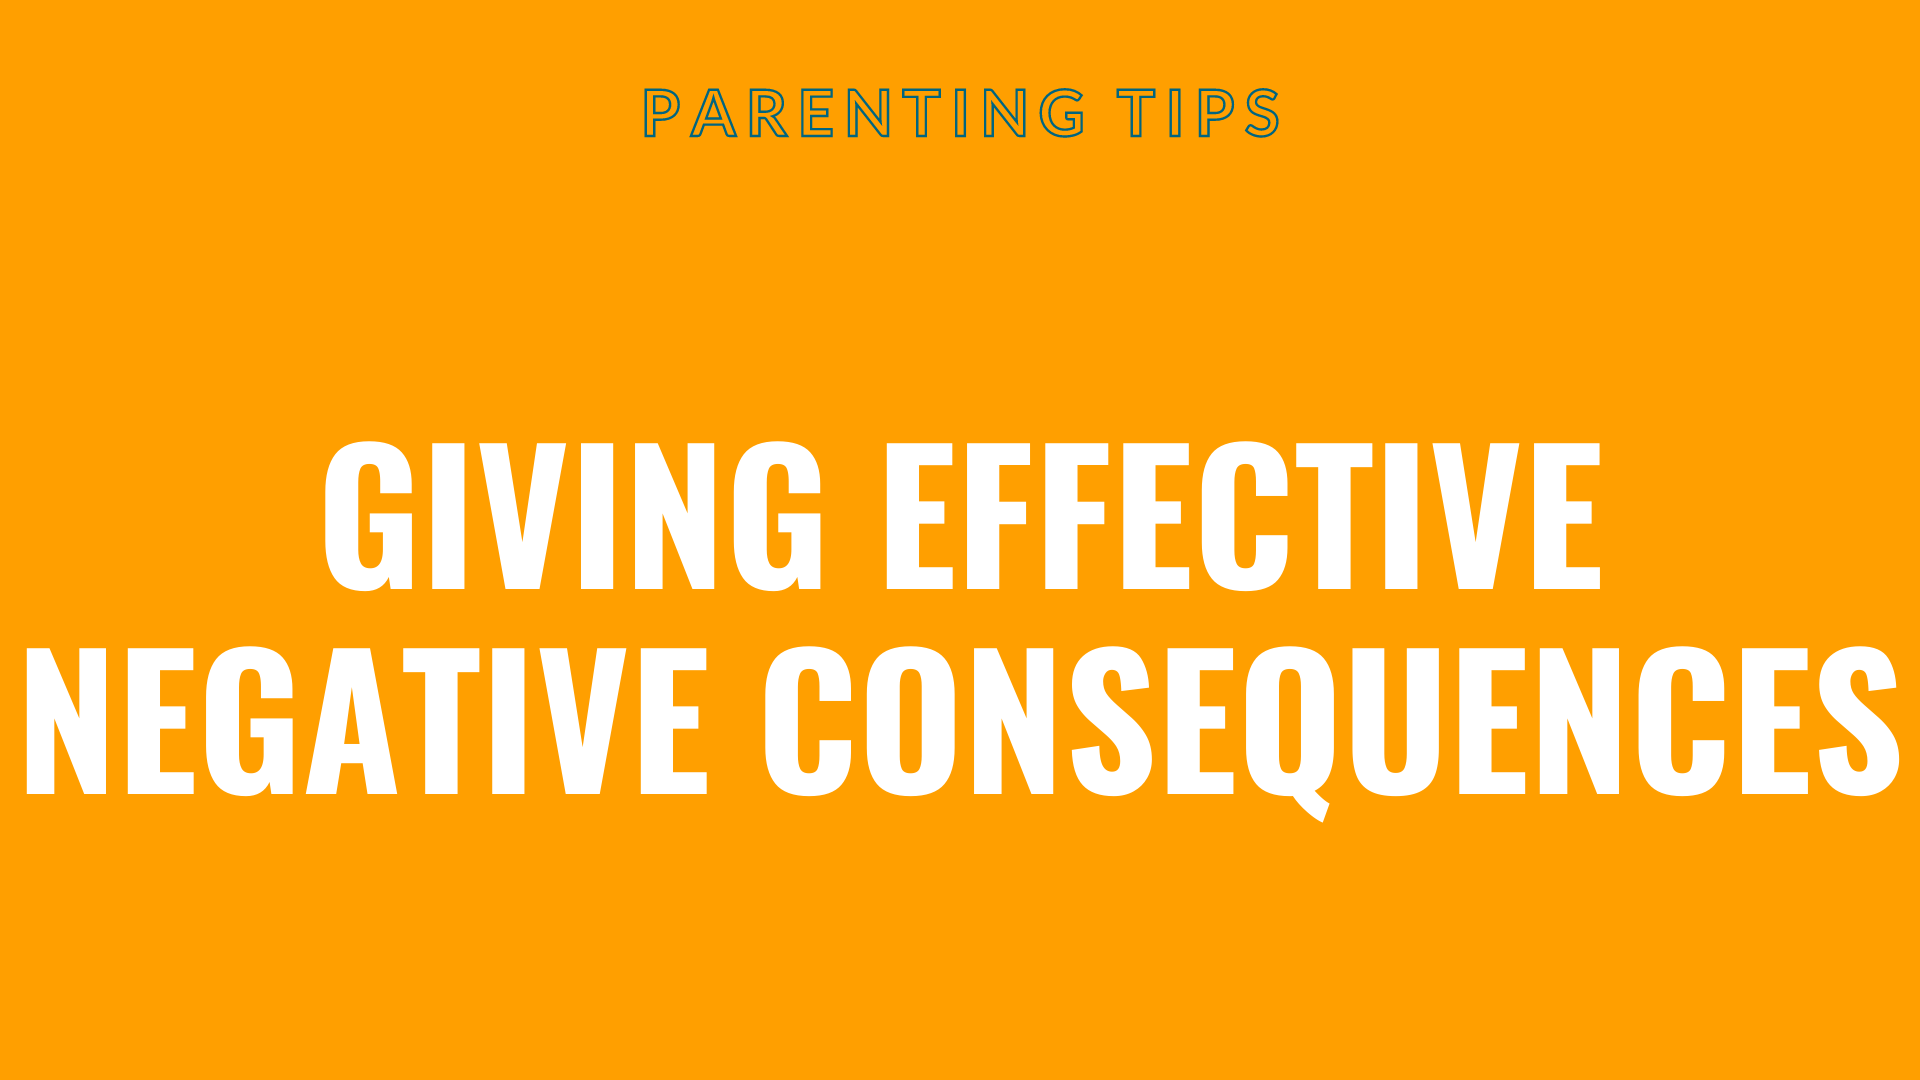 Giving Effective Negative Consequences